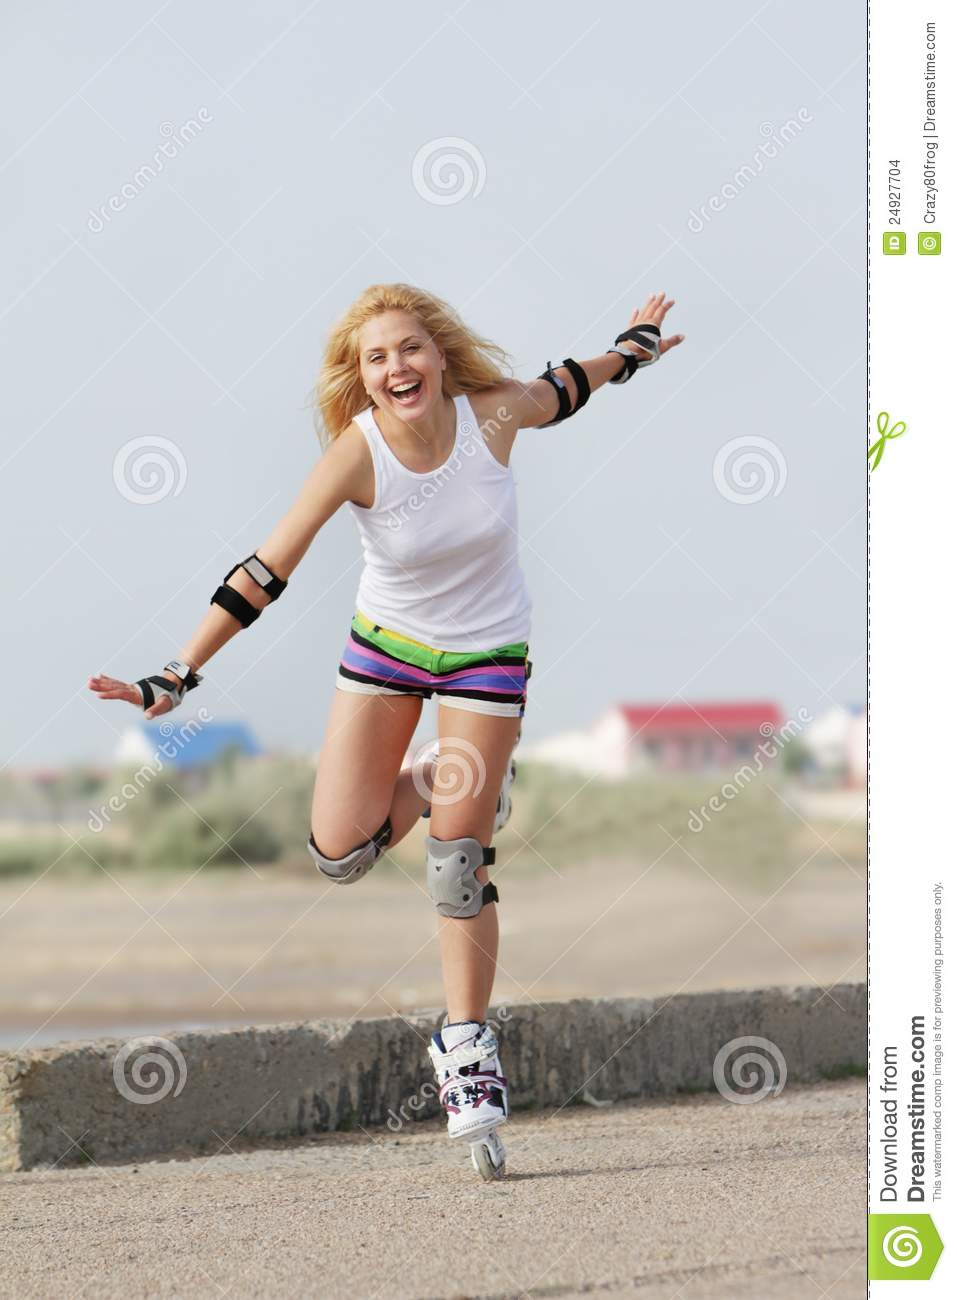 Rollerblade / Roller Skating Woman Stock Images - Image ...